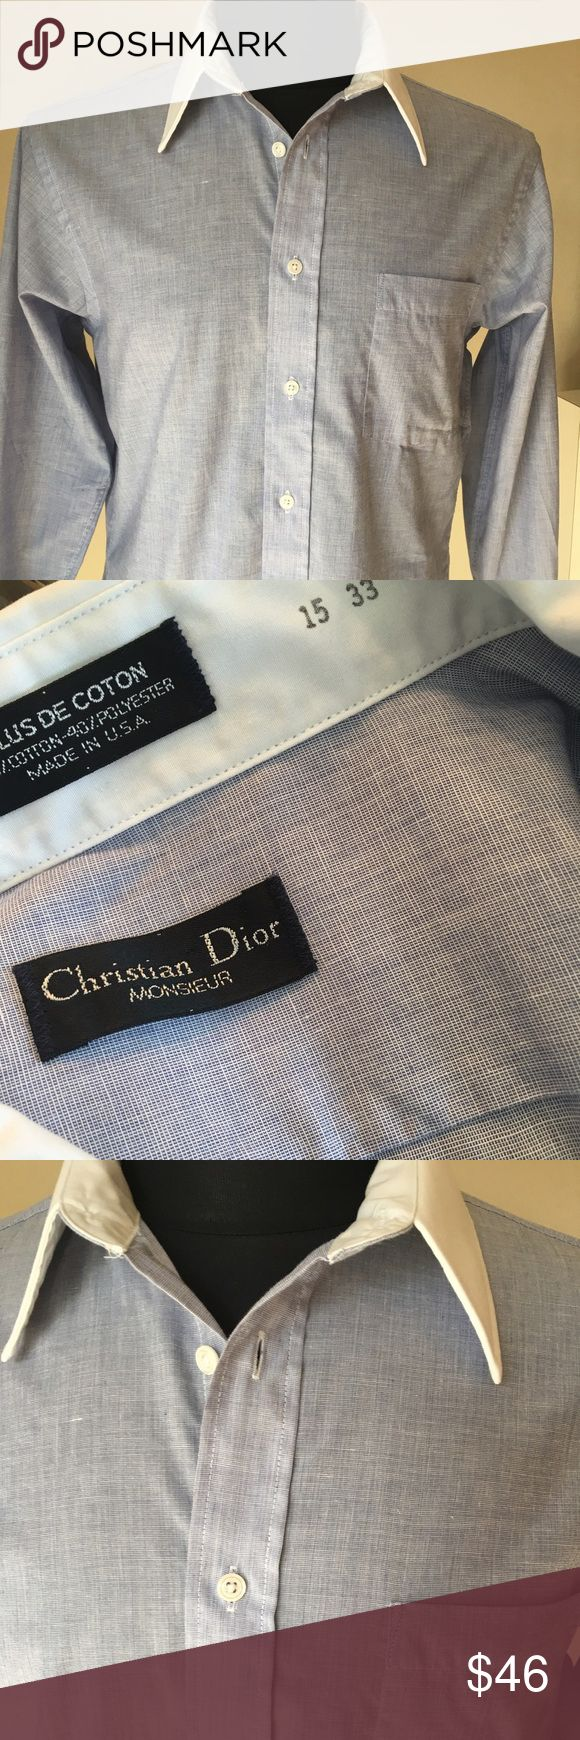 🌟CHRISTIAN DIOR MENS SHIRT 💯AUTHENTIC CHRISTIAN DIOR MENS SHIRT 100% AUTHENTIC. HREAY STYLISH SHIRT . TRUE HIGH END FASHION . IT IS A FRENCH CUFF SHIRT WITH WHITE CUFFS IT IS A SIZE 15   33 Christian Dior Shirts Dress Shirts